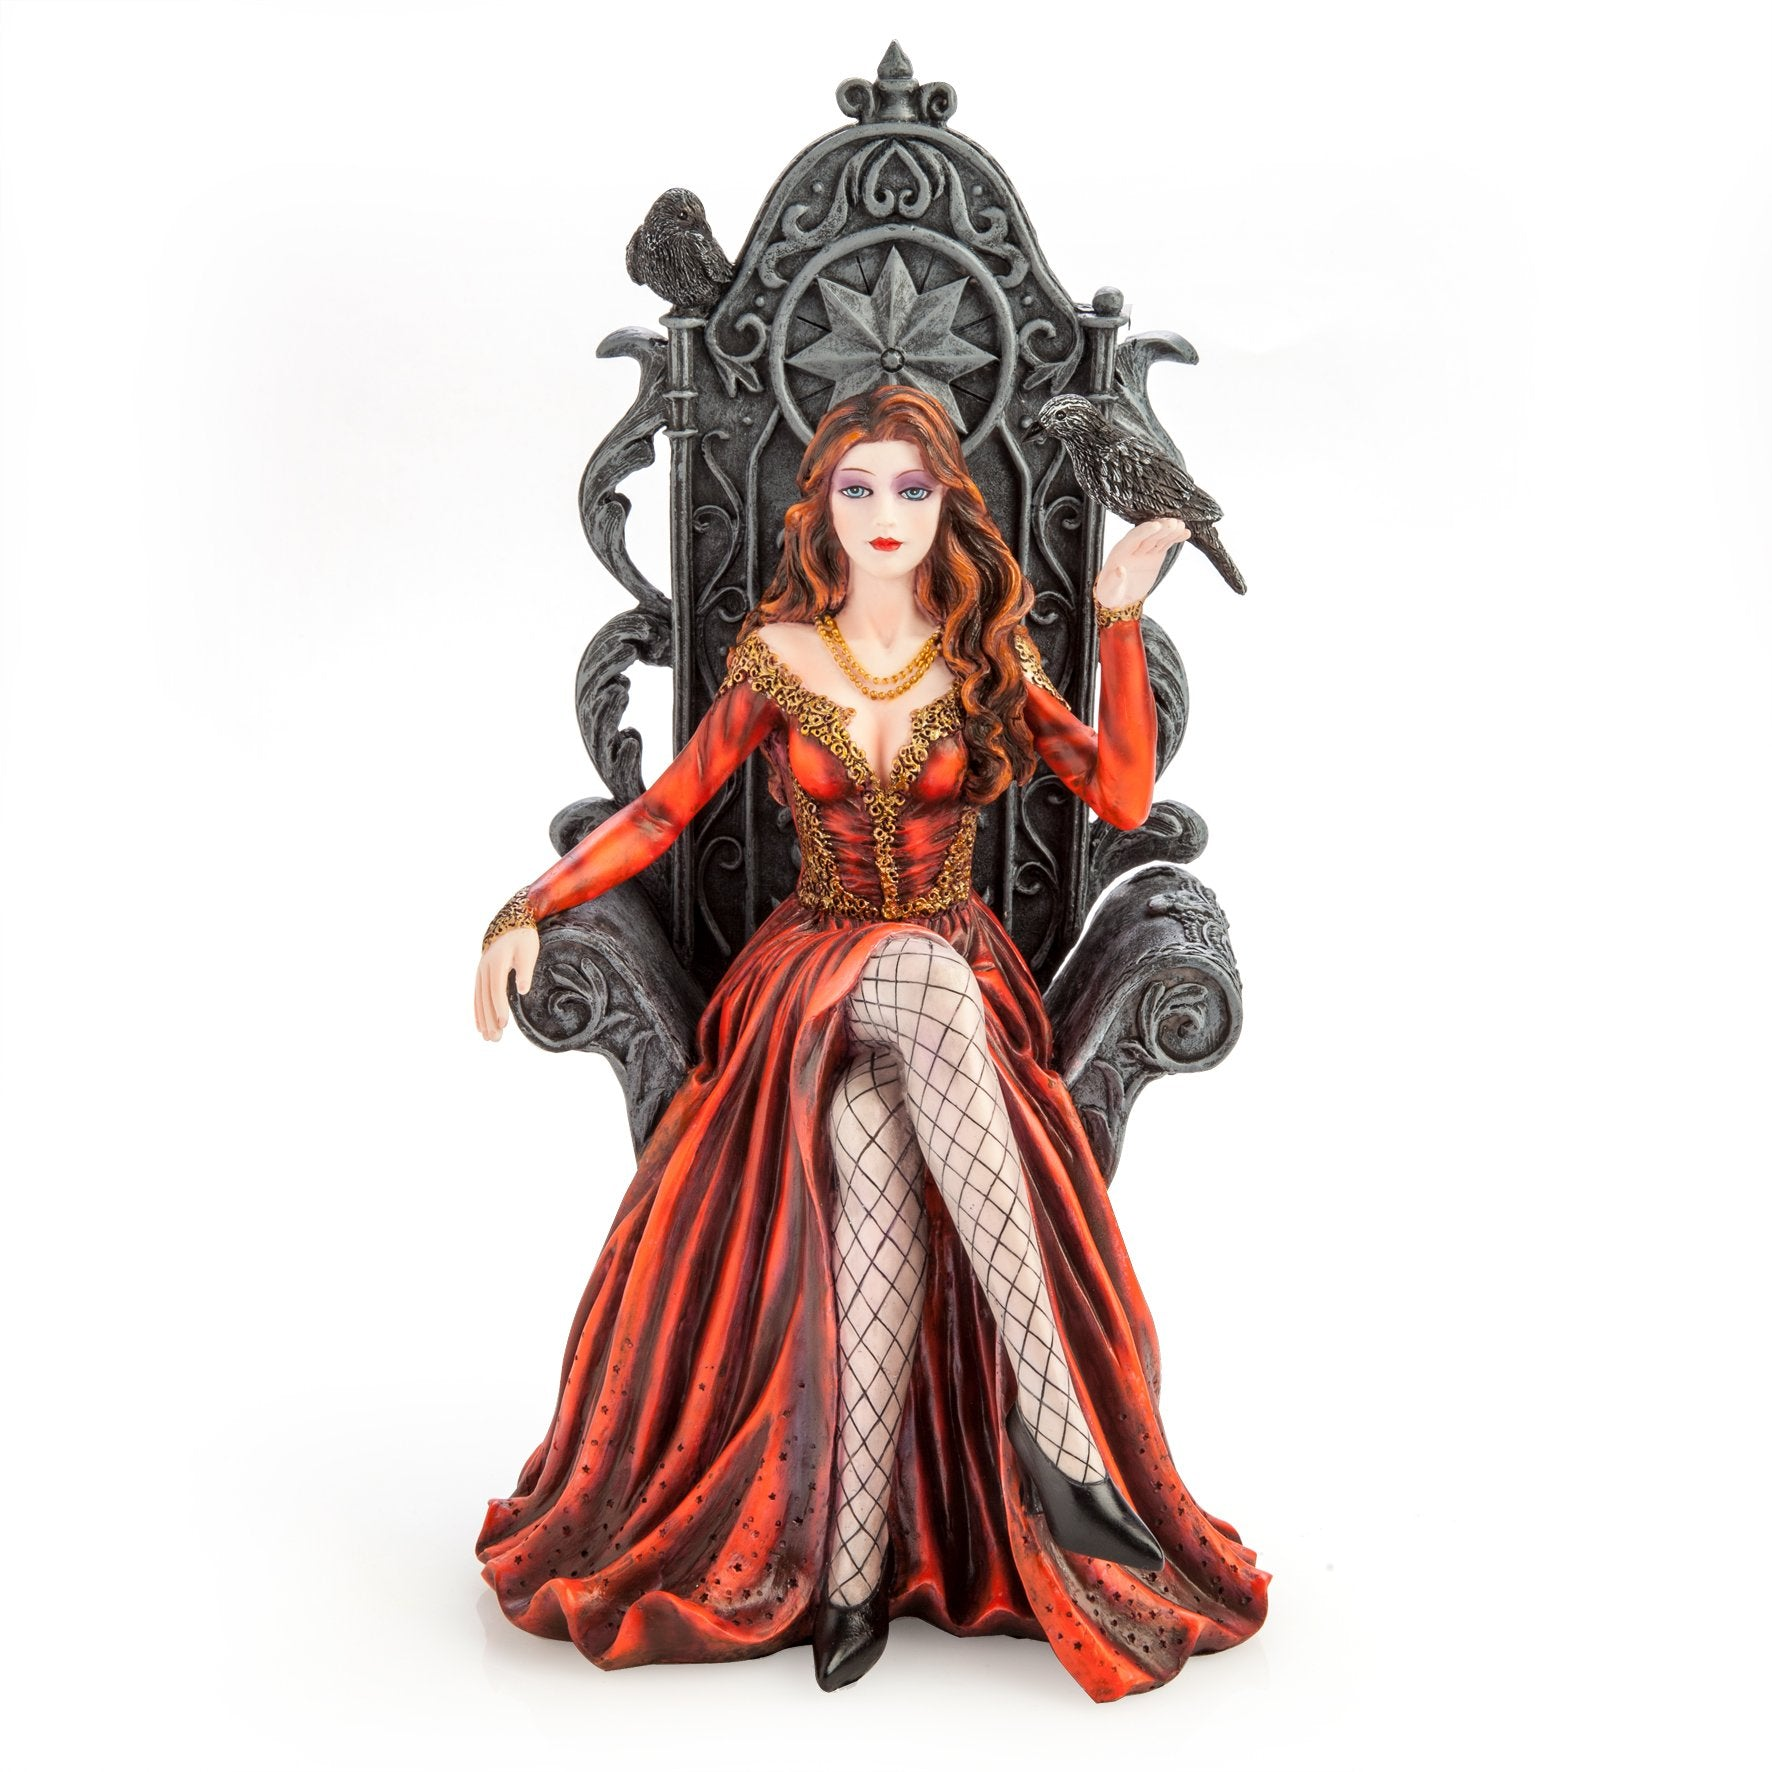 Red Queen on Throne with Raven - Rivendell Shop NZ